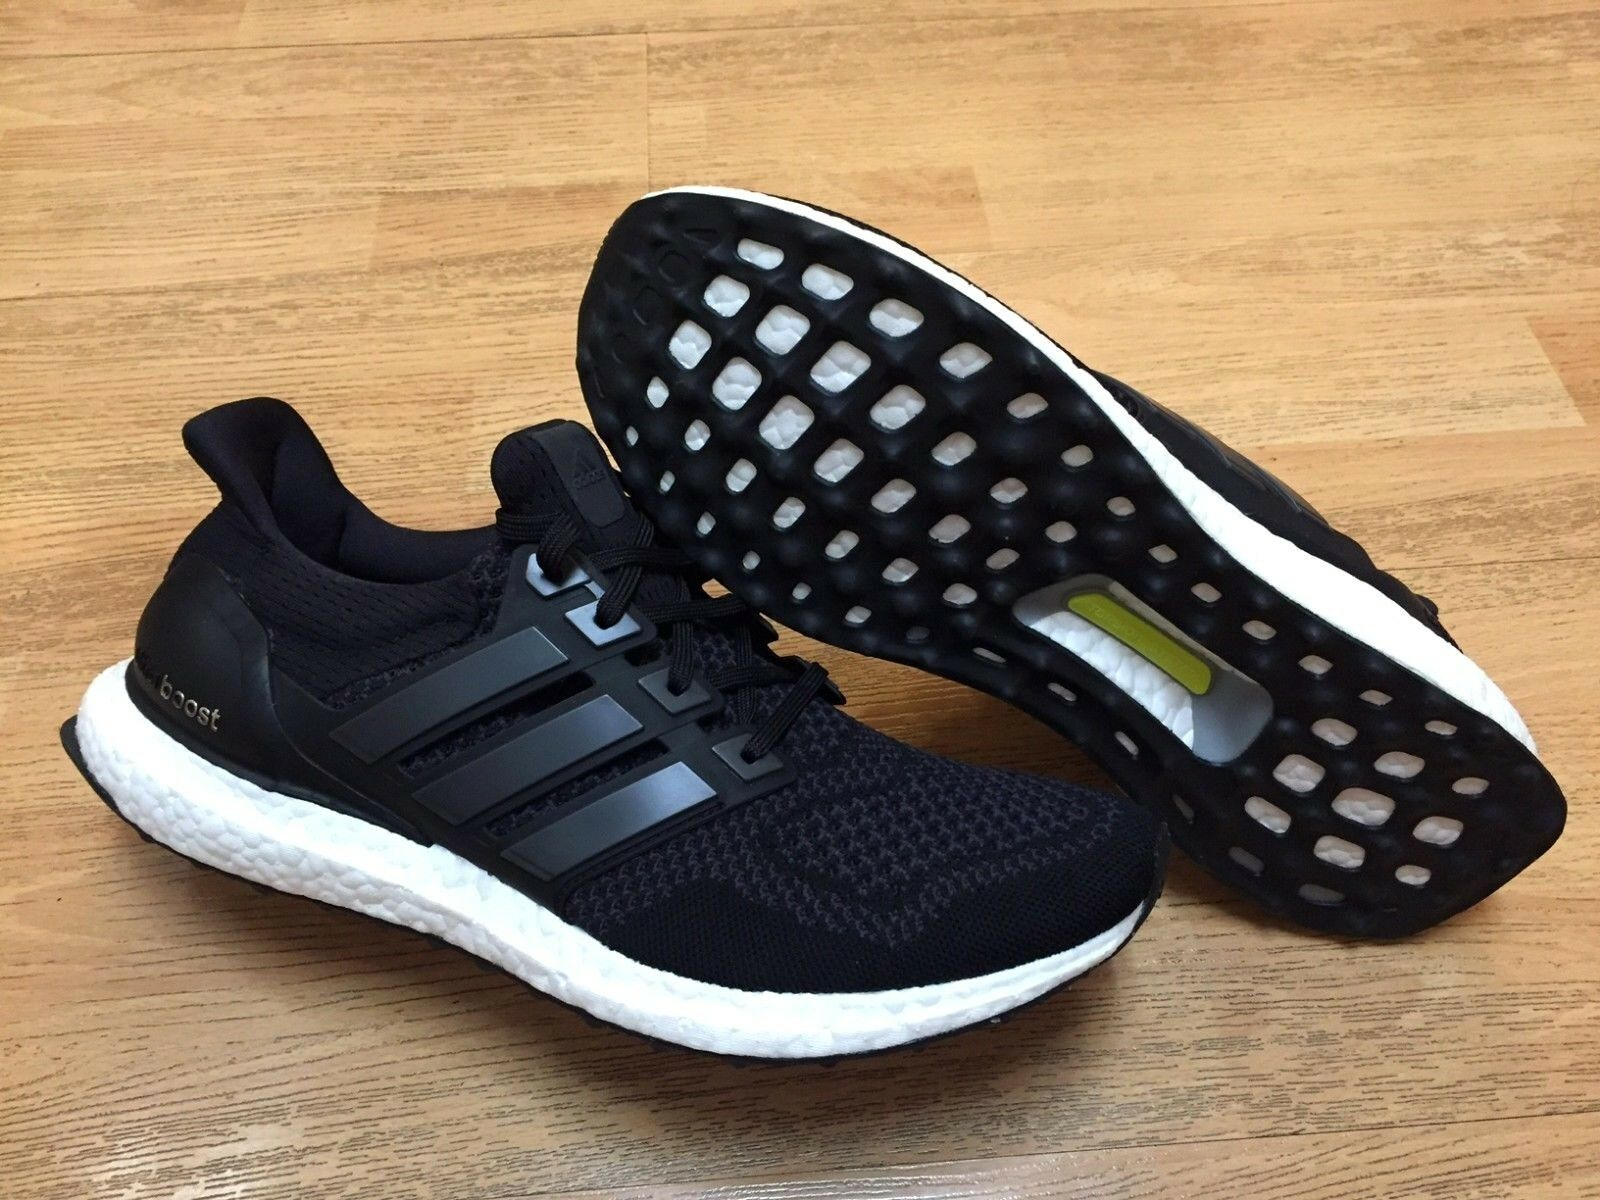 adidas ultra boost boost boost 1.0 hypebeast noir 11 yezzy nmd pk 750 350, bourgogne ca01d6